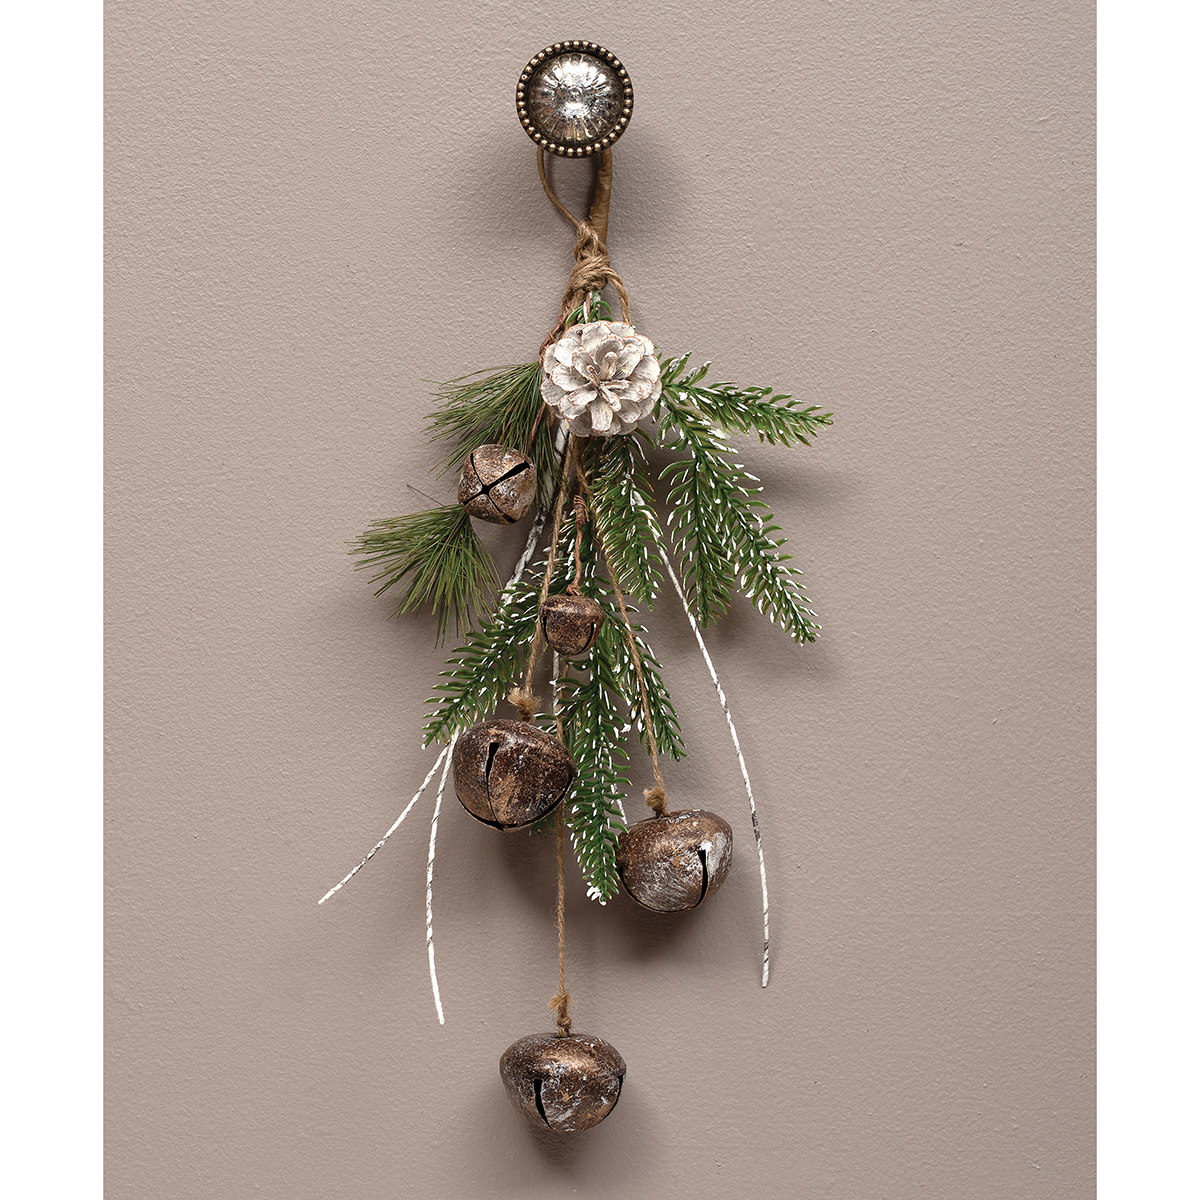 JINGLE BELL DROP ORNAMENT WITH BIRCH,